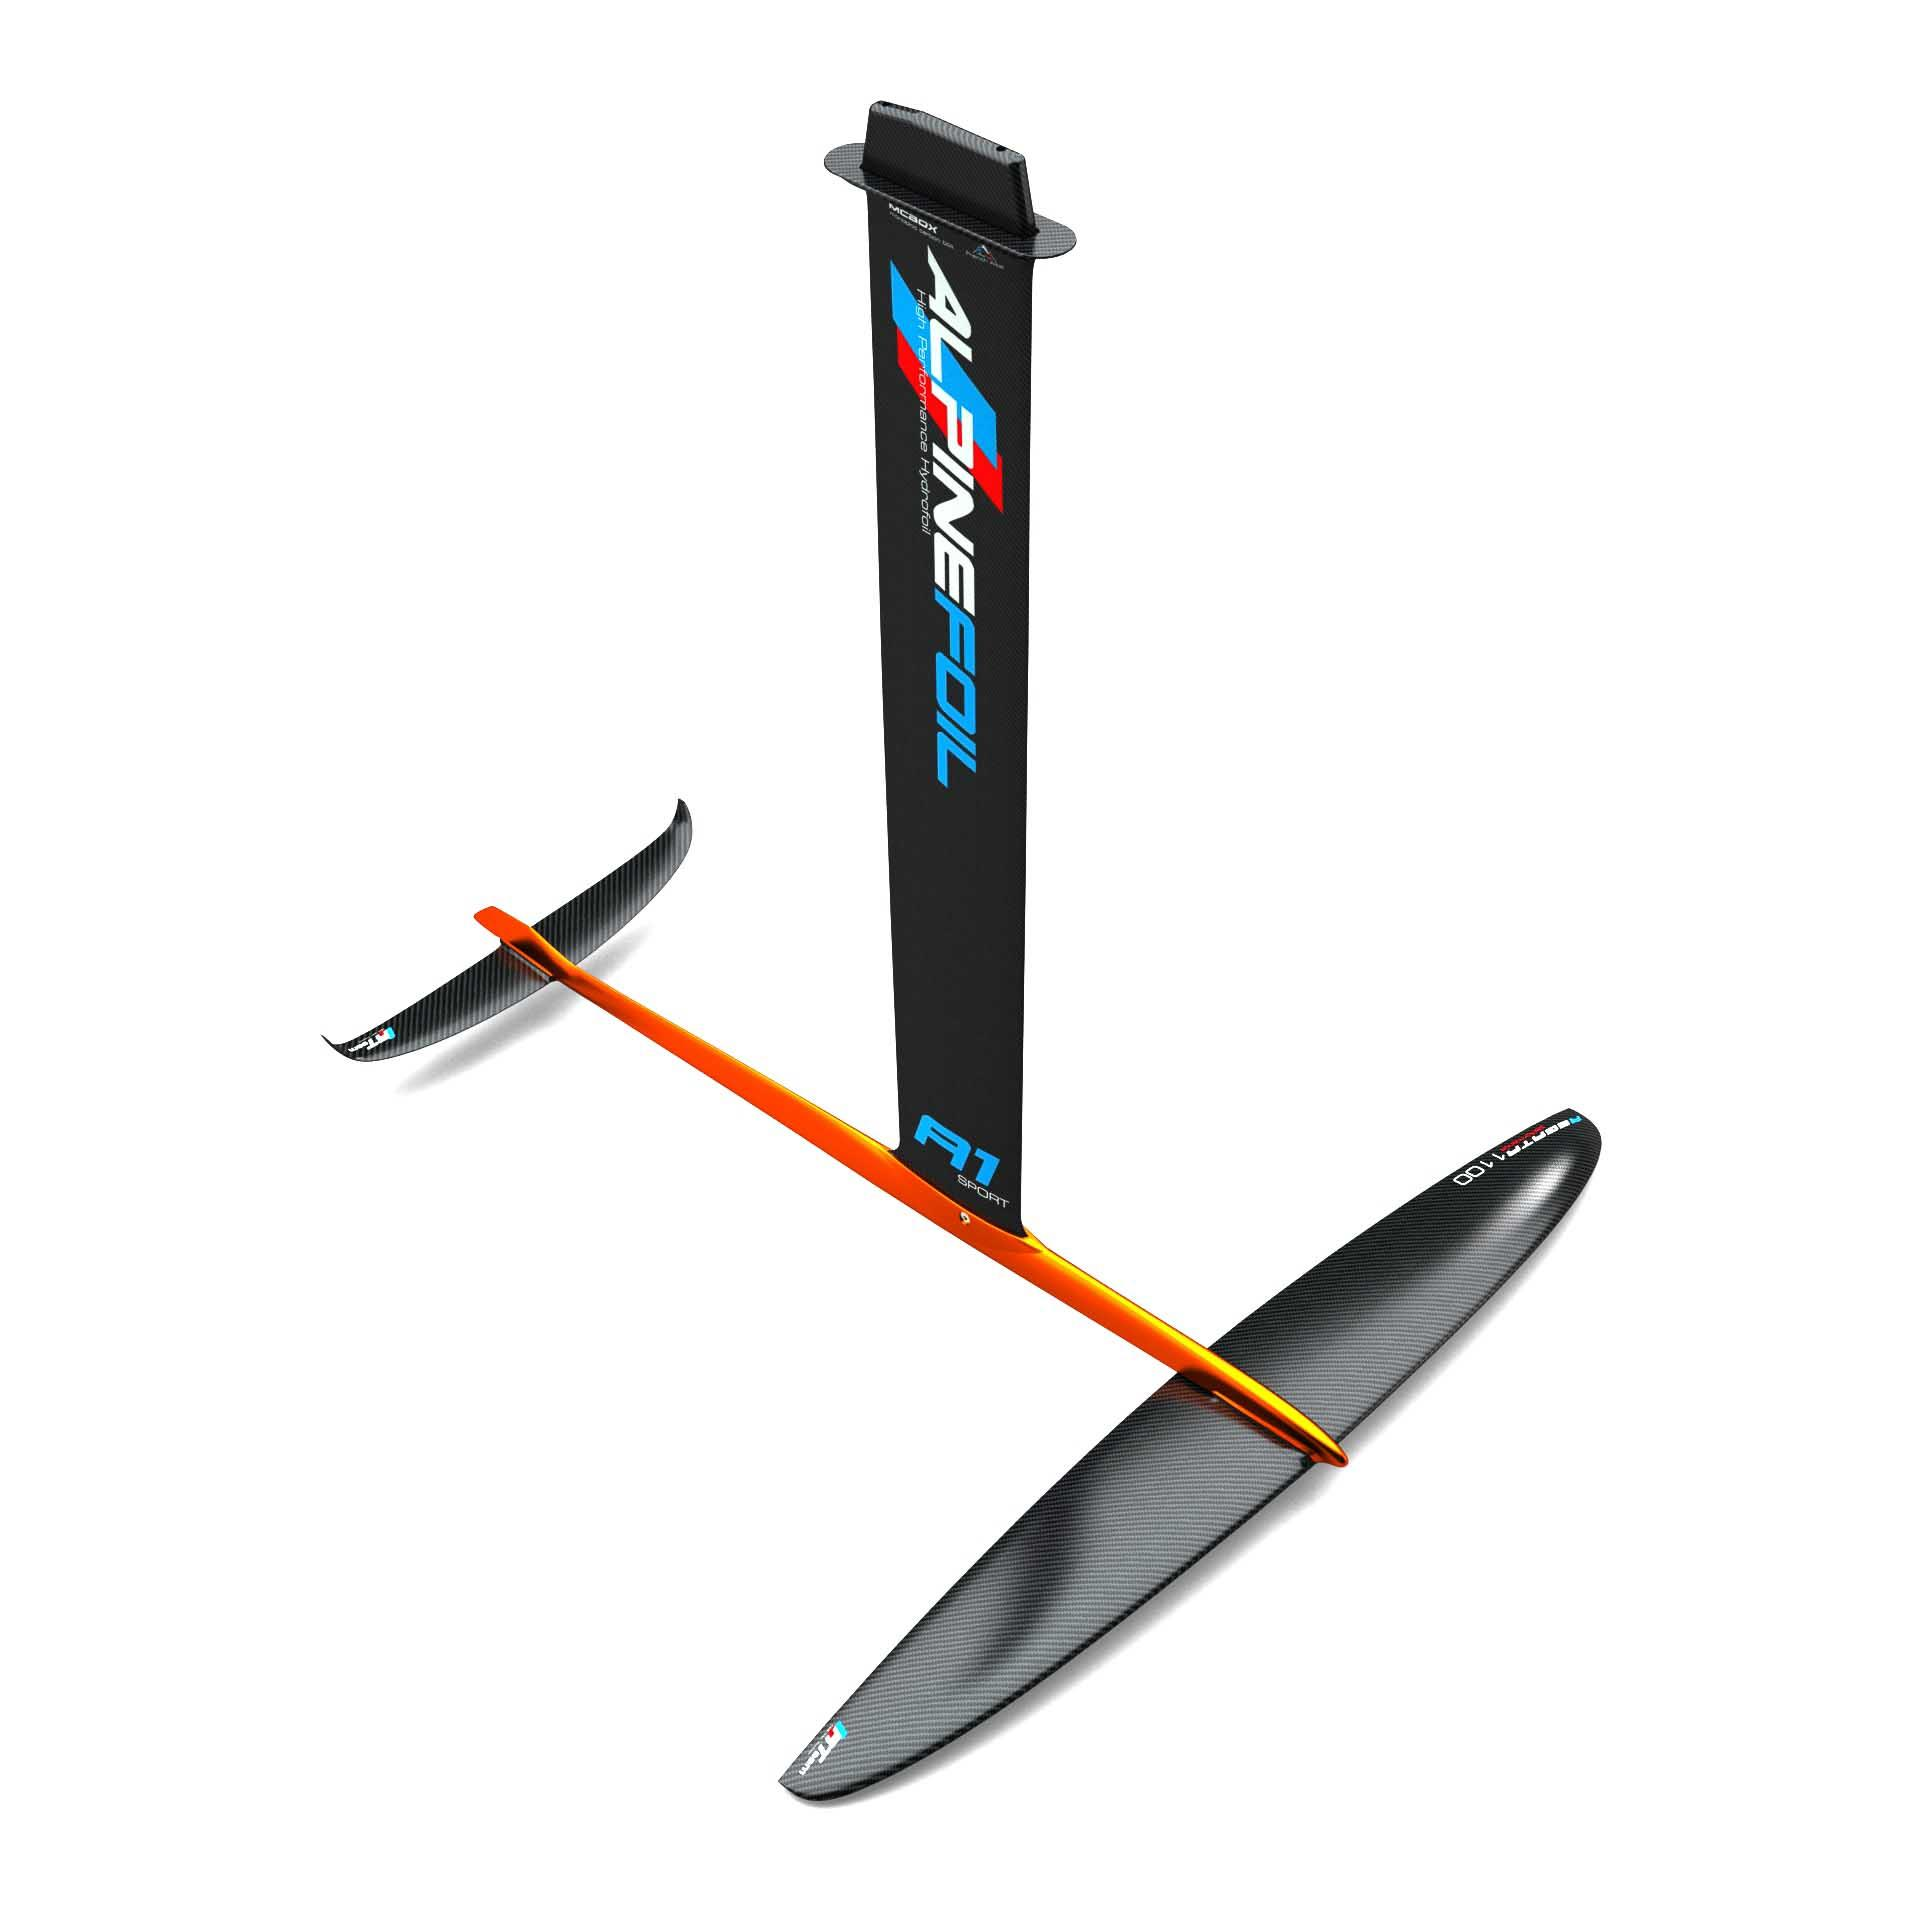 Windfoil alpinefoil a1 sport carbon regatta 1100 17